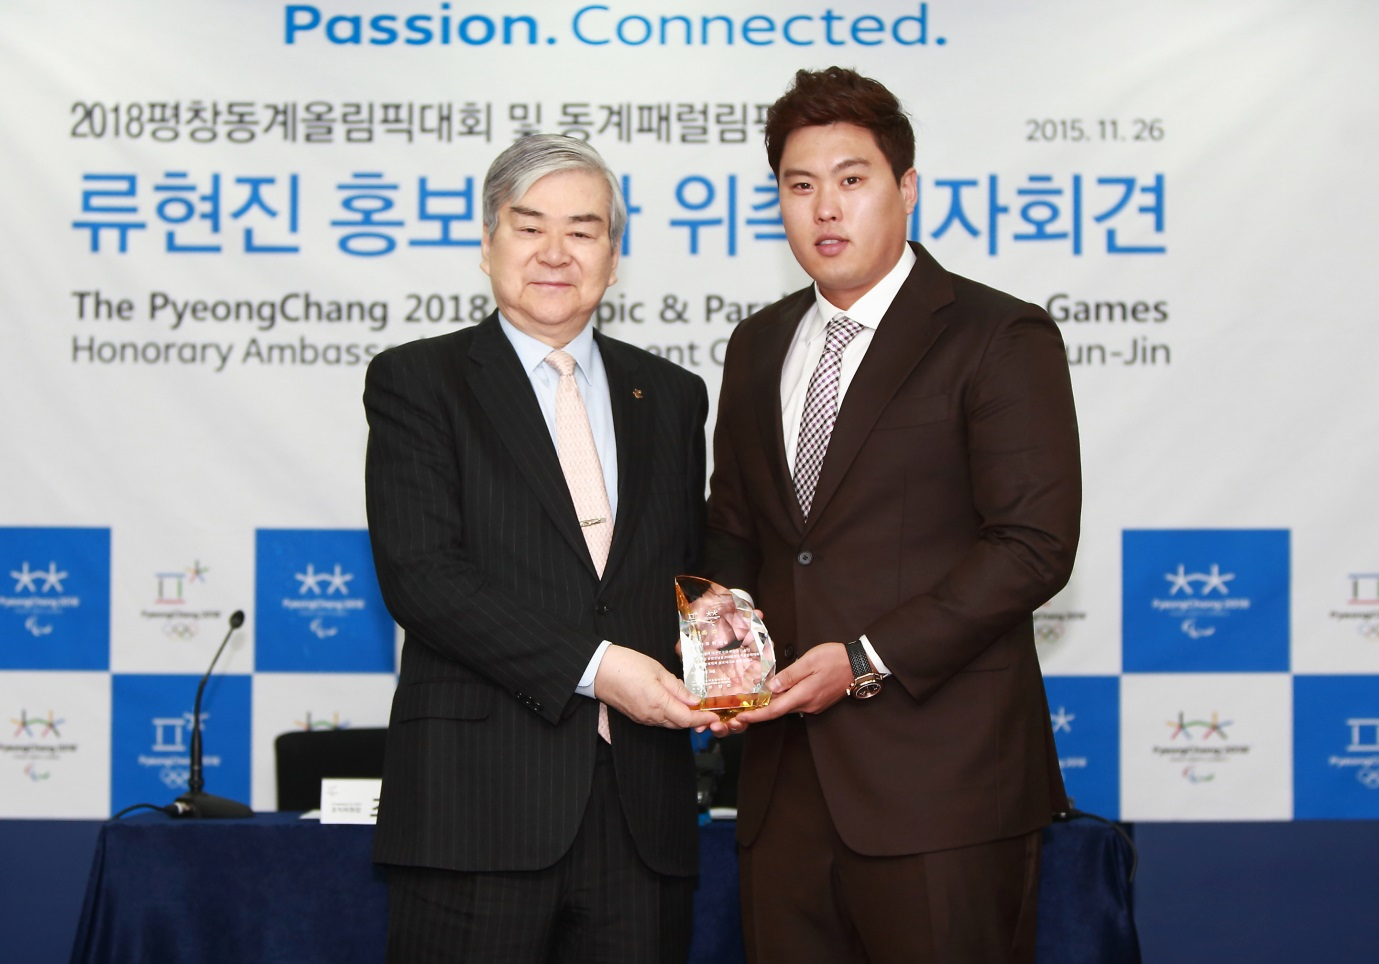 The PyeongChang Organizing Committee for the 2018 Olympic & Paralympic Winter Games (POCOG, President Yang-ho Cho) appointed Major League Baseball (MLB) pitcher Ryu Hyun-jin as an Honorary Ambassador on November 26th, in Seoul, Korea.